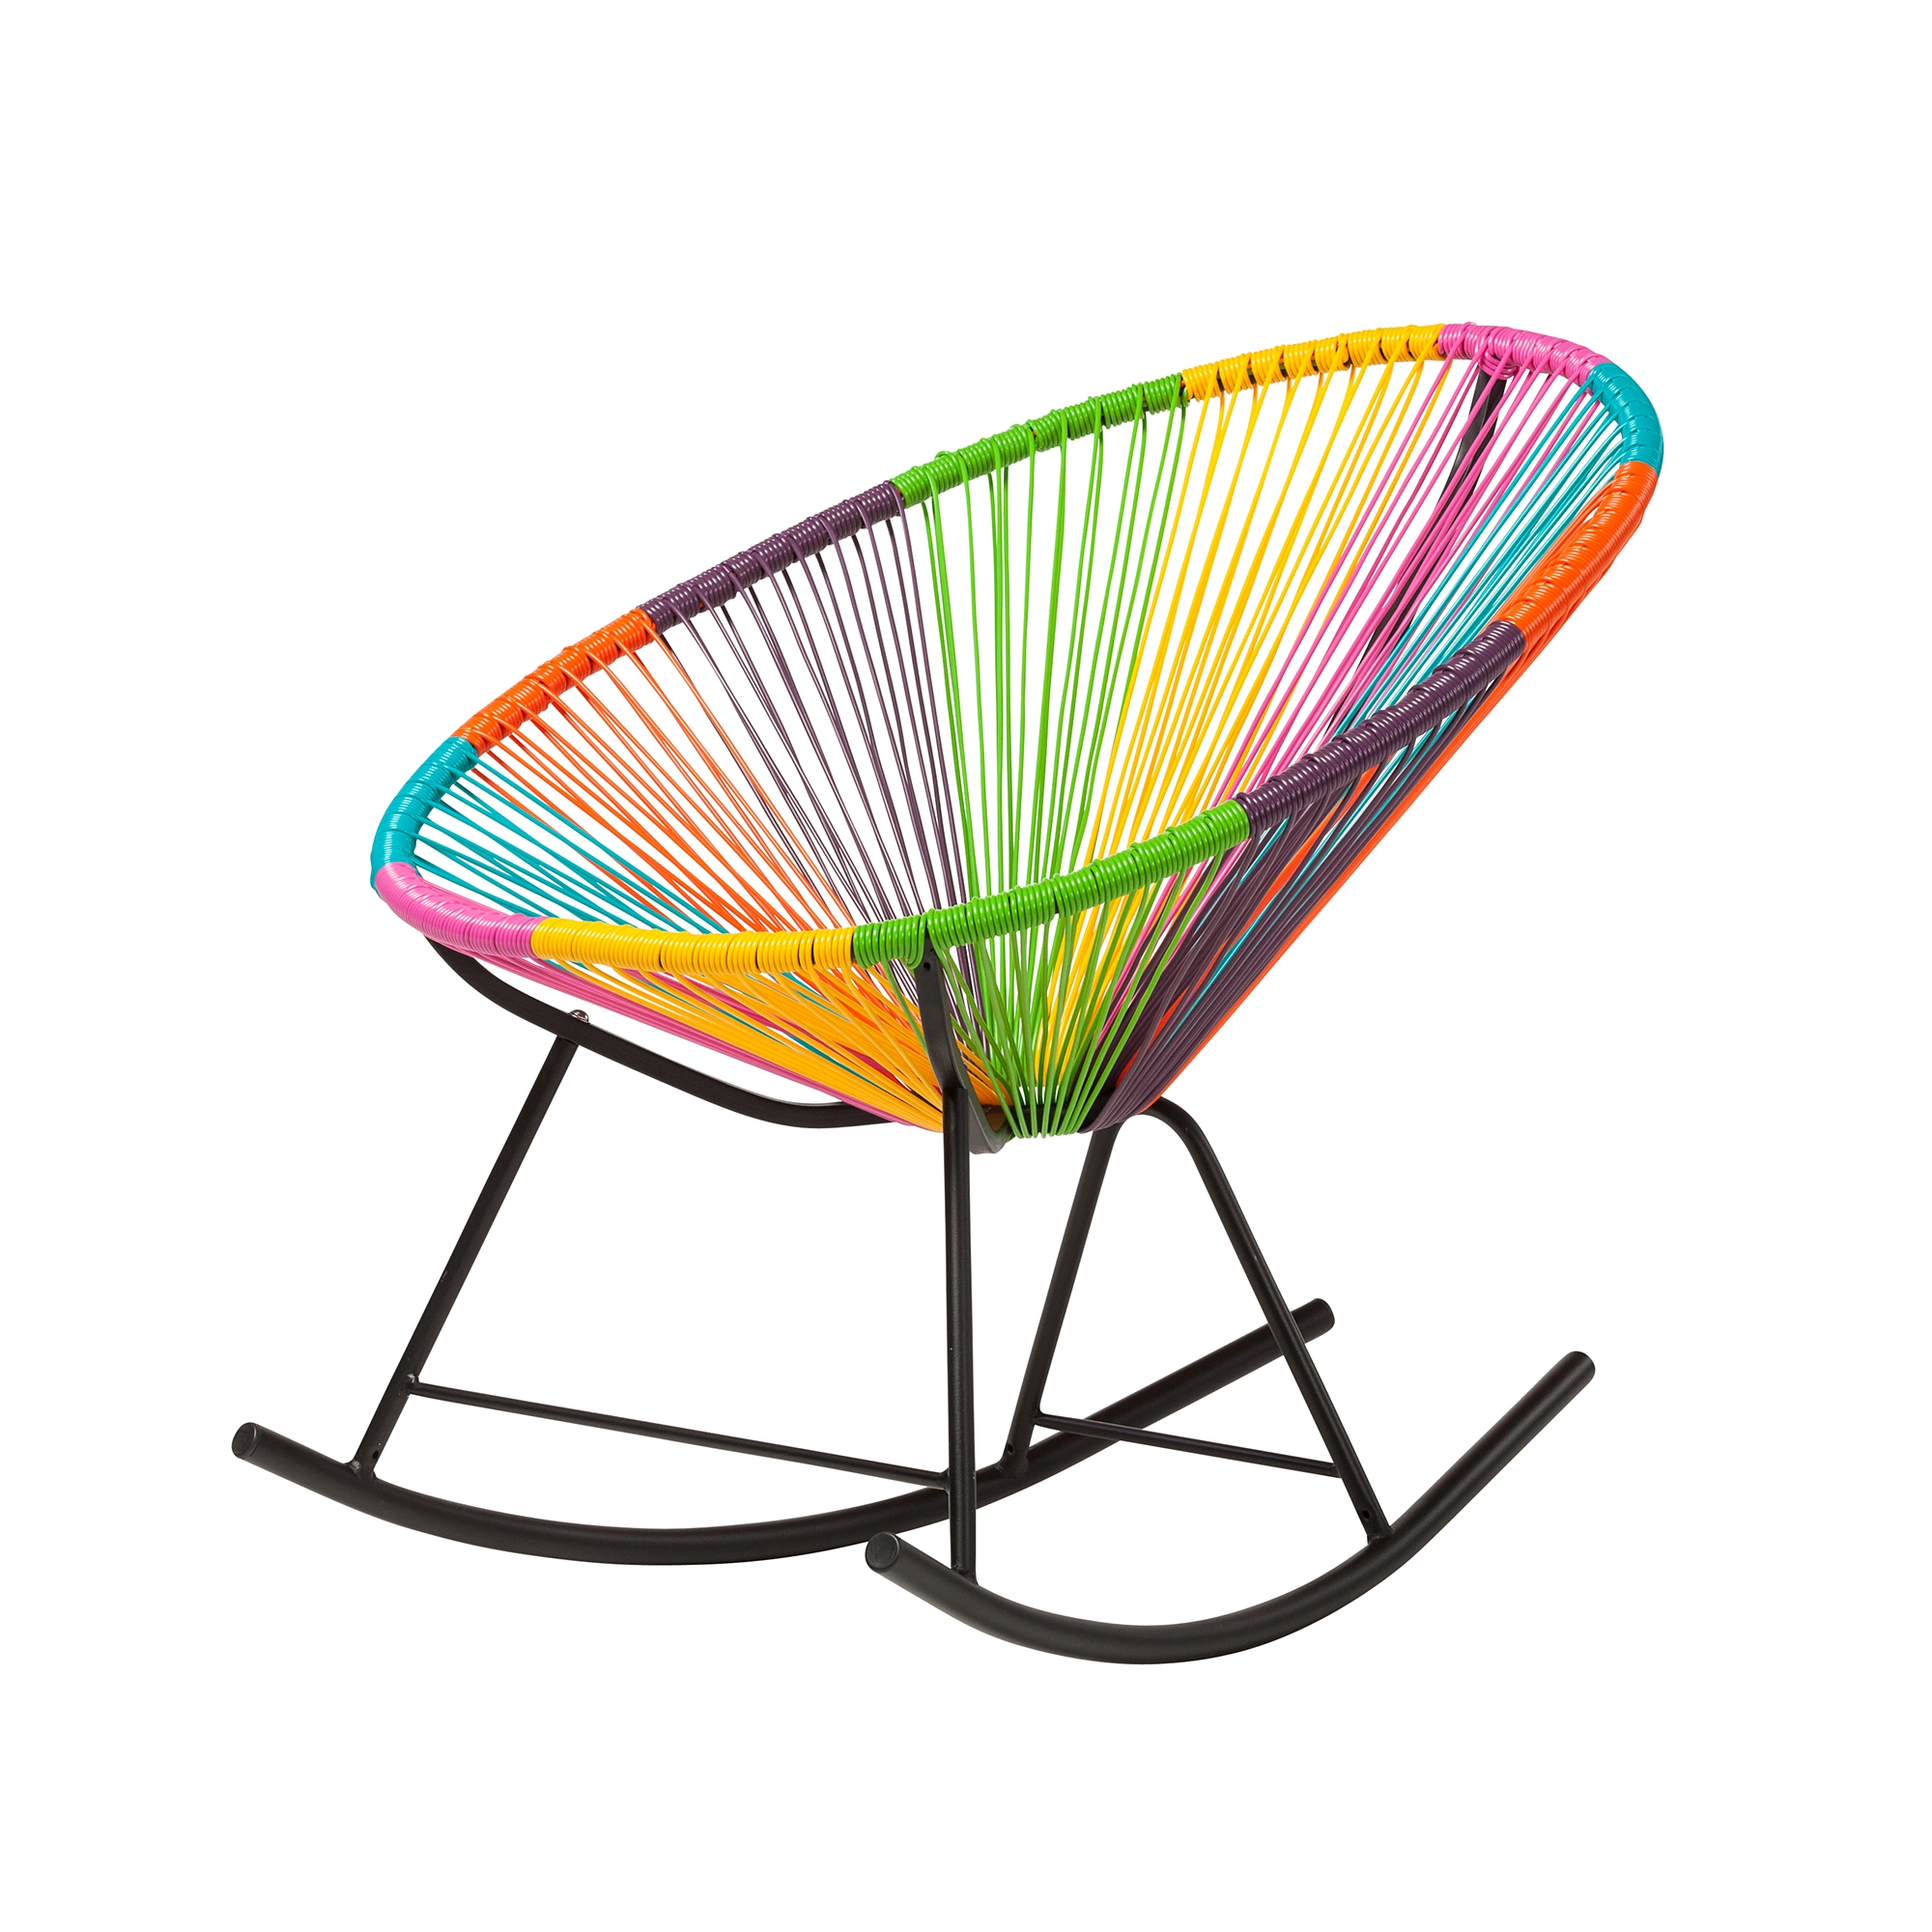 Acapulco indoor outdoor rocking chair mixed